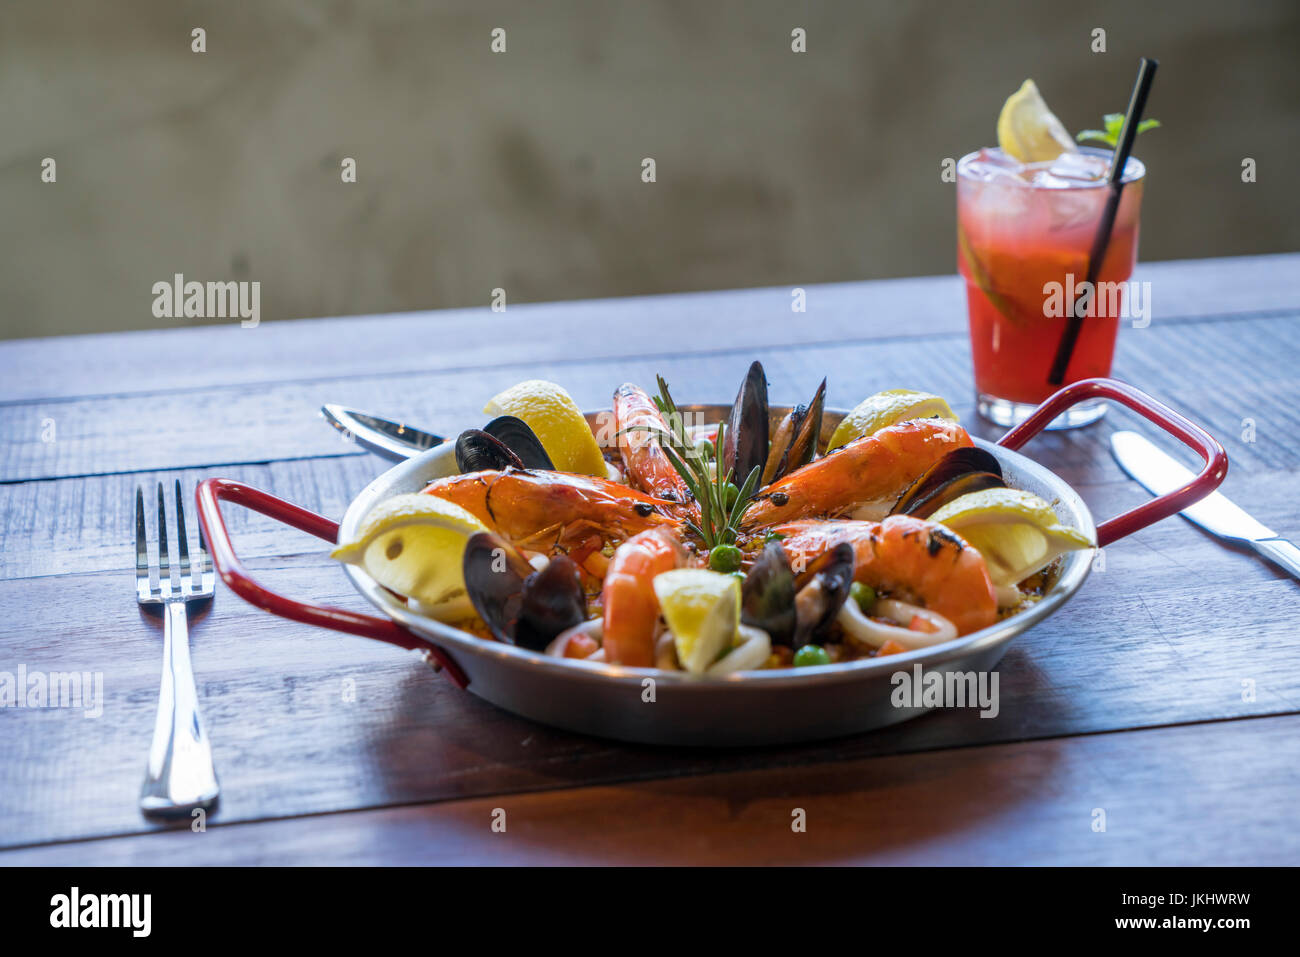 Paella with seafood vegetables and saffron served in the traditional pan. - Stock Image